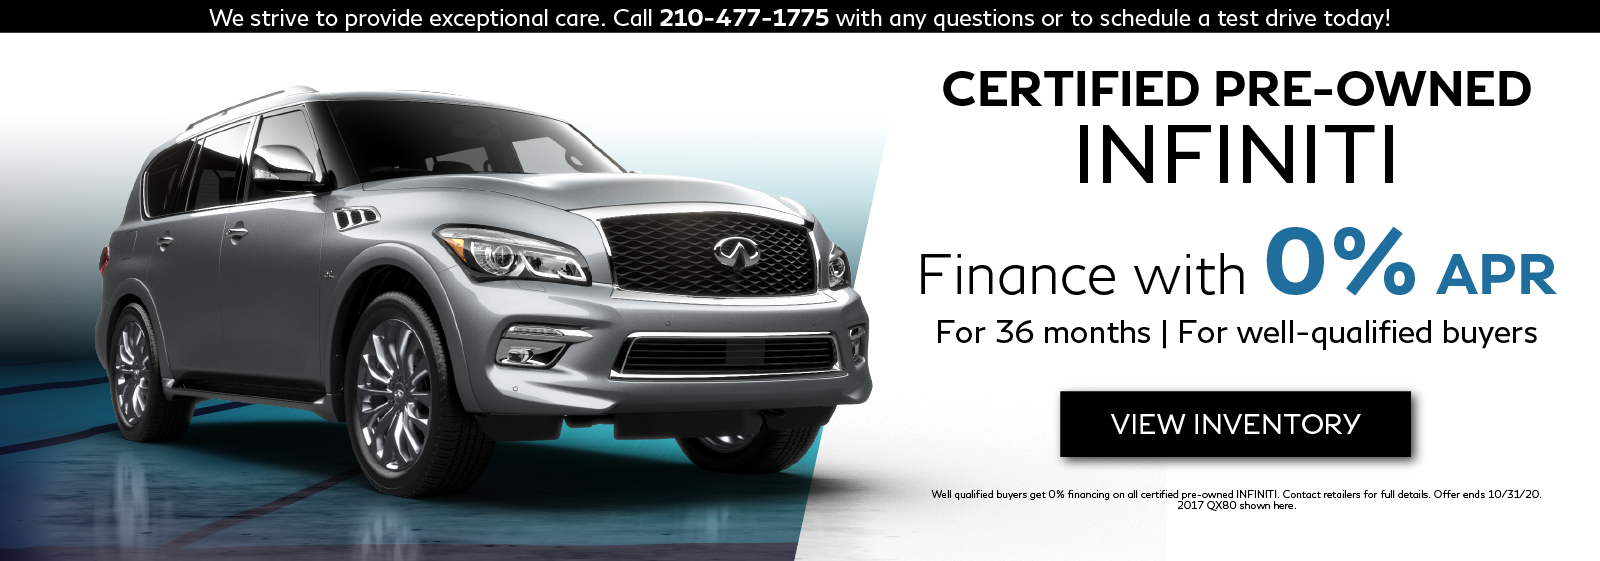 Well-qualified buyers can get )% APR financing for 36 months on certified pre-owned INFINITI models. Click to view inventory.